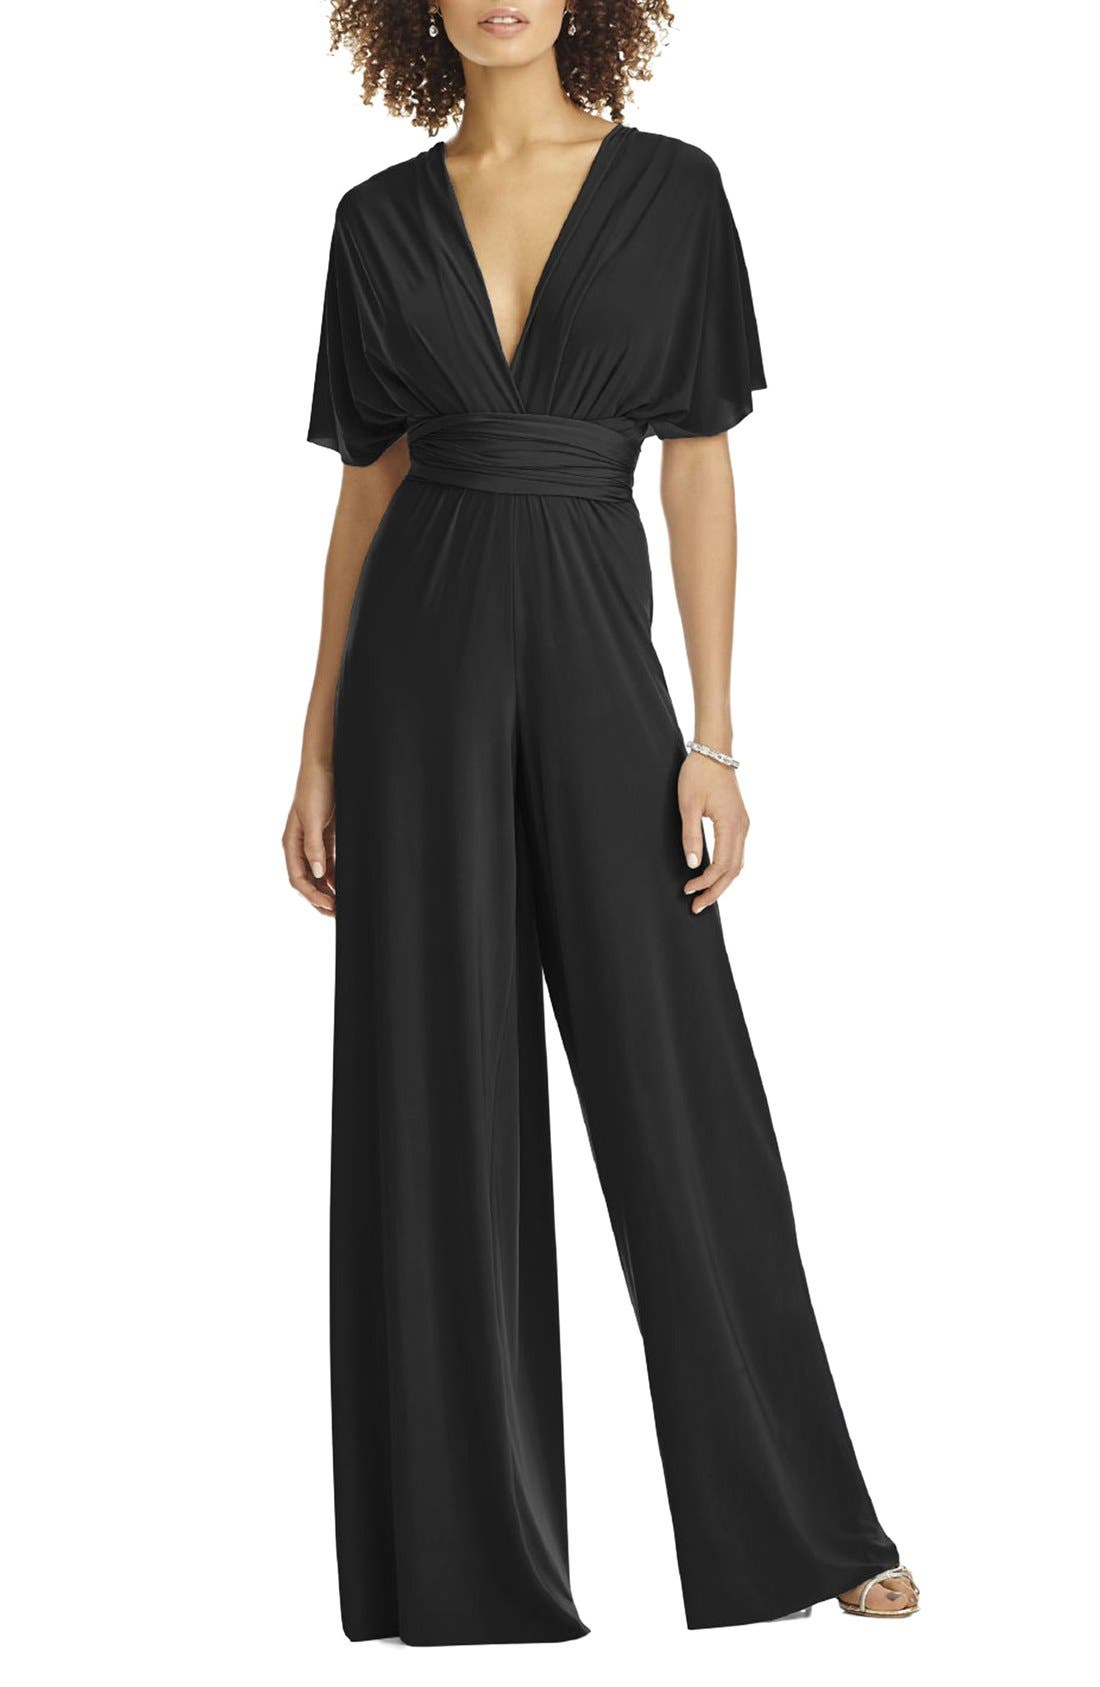 1960s – 70s Cocktail, Party, Prom, Evening Dresses Womens Dessy Collection Convertible Wide Leg Jersey Jumpsuit Size X-Large - Black $160.00 AT vintagedancer.com